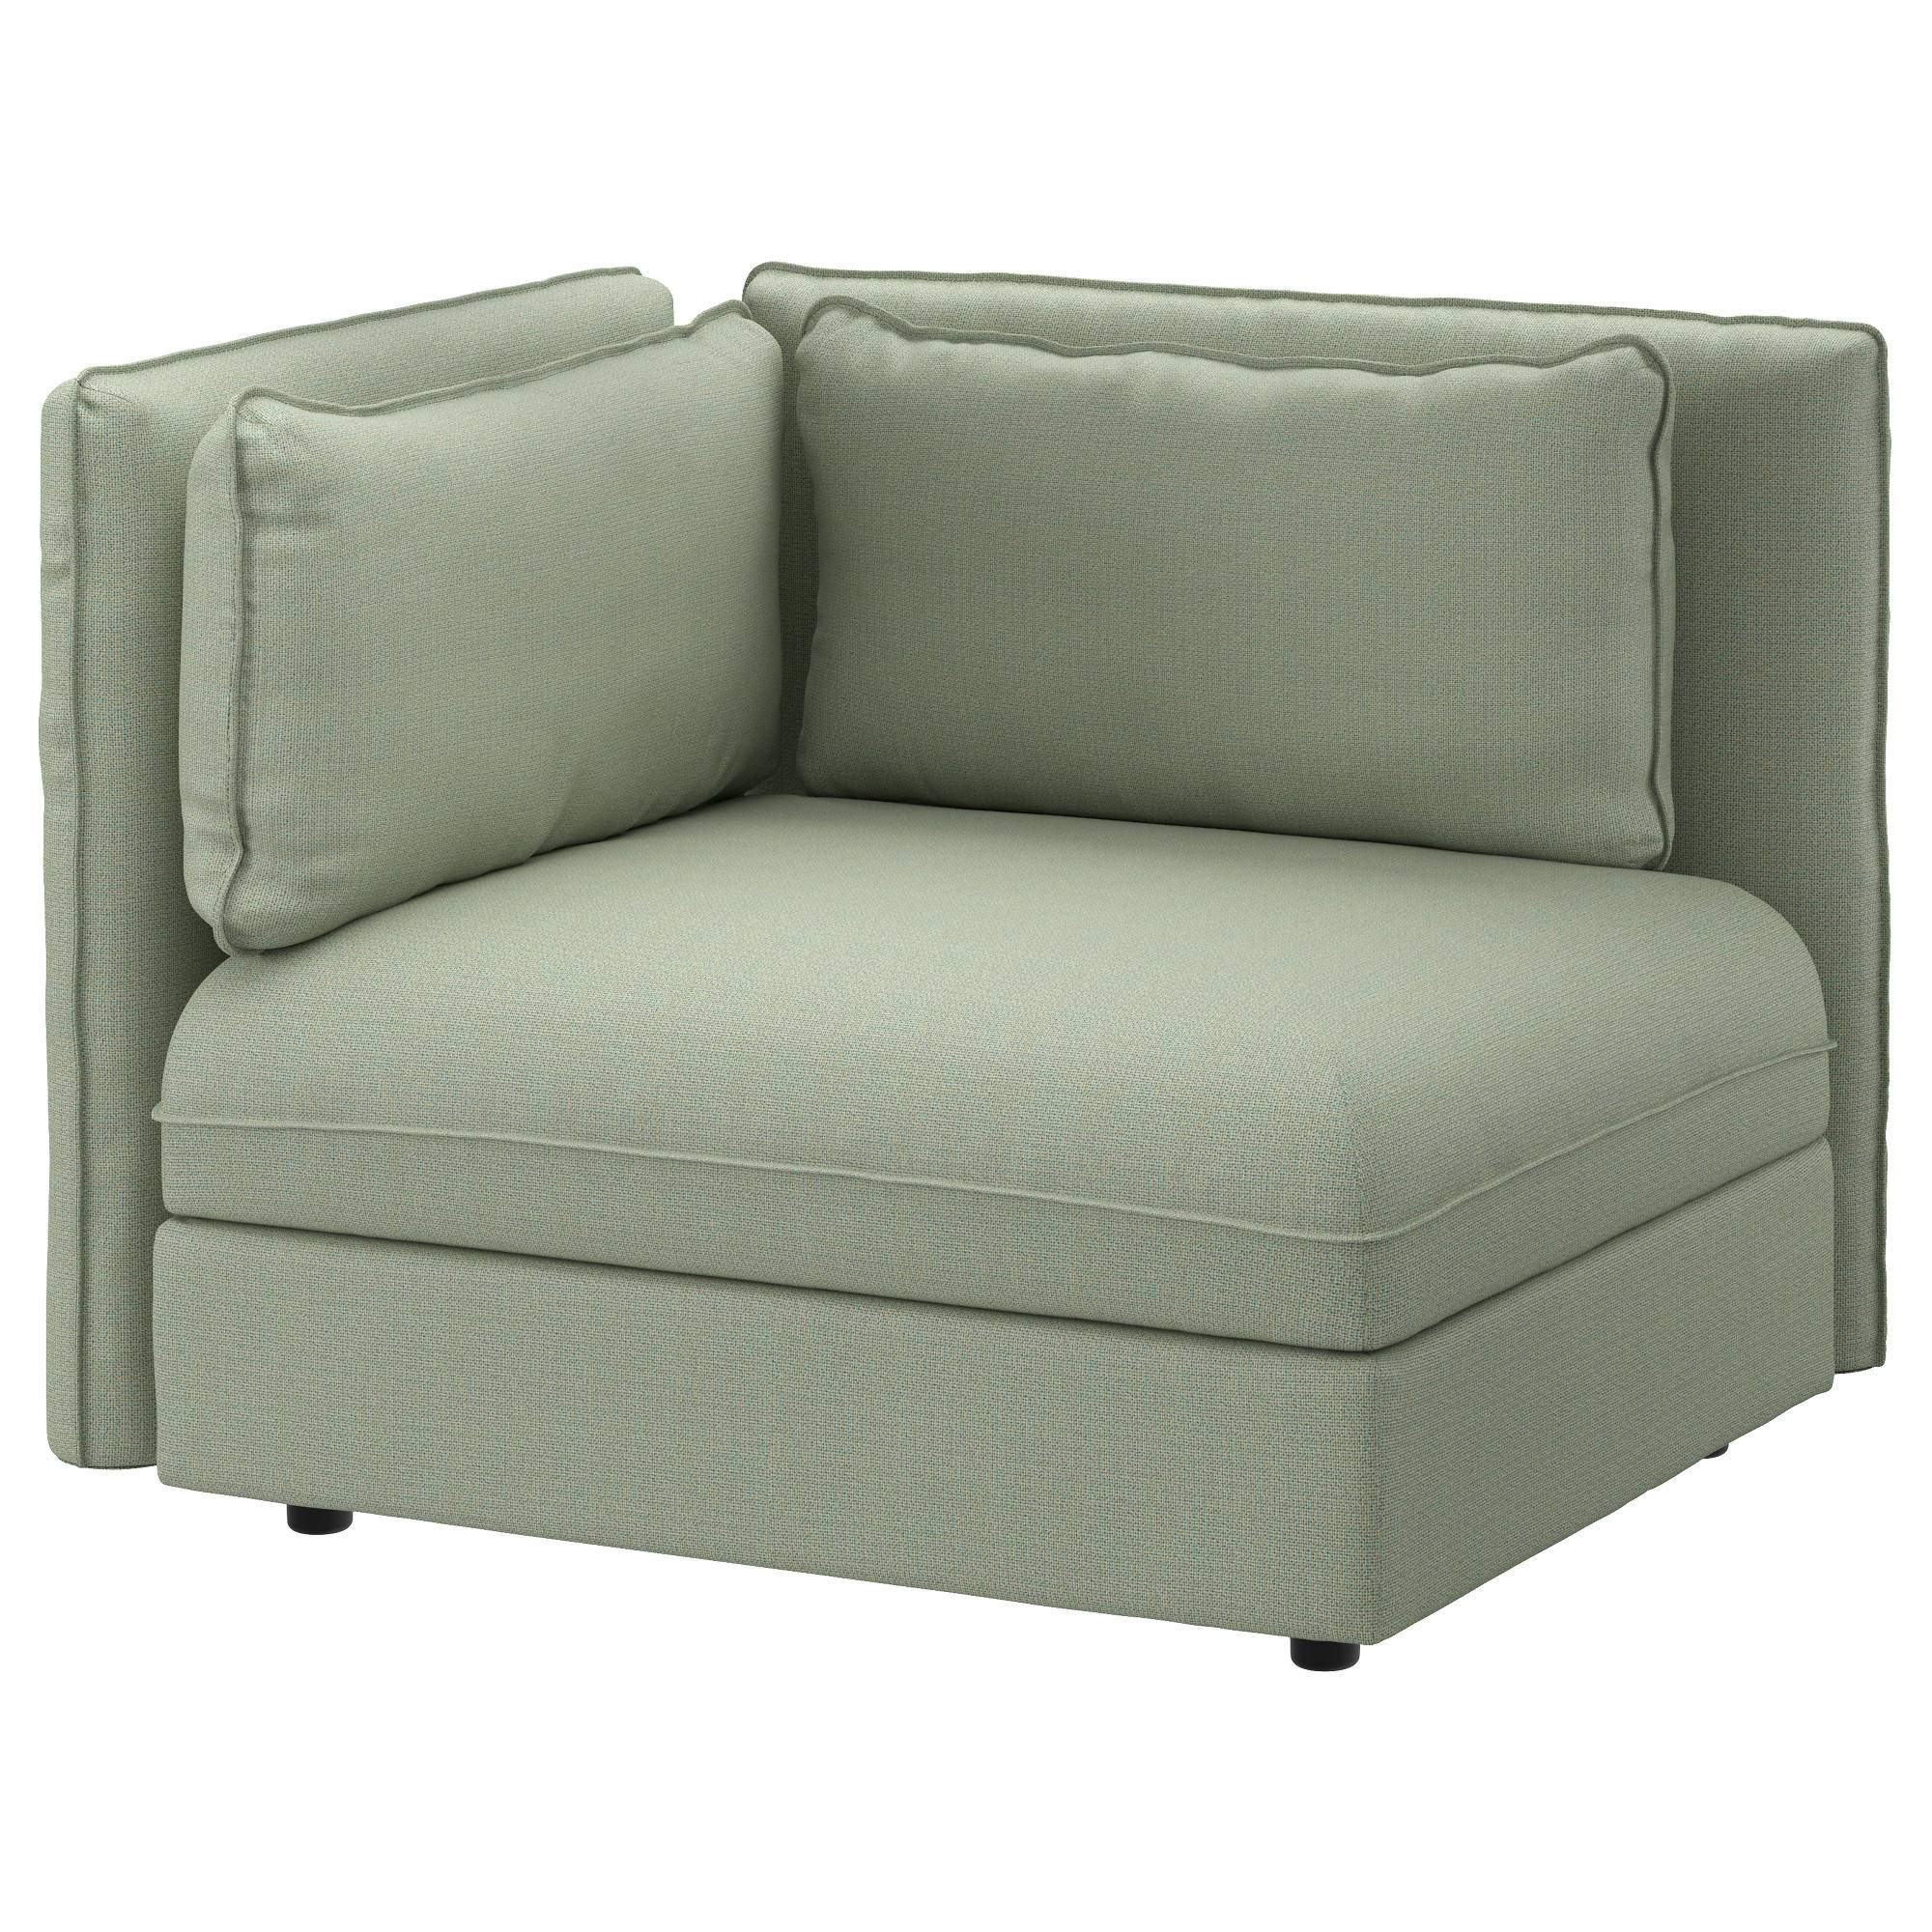 Sectional Sofas & Couches - Ikea regarding Ikea Sectional Sleeper Sofa (Image 15 of 25)